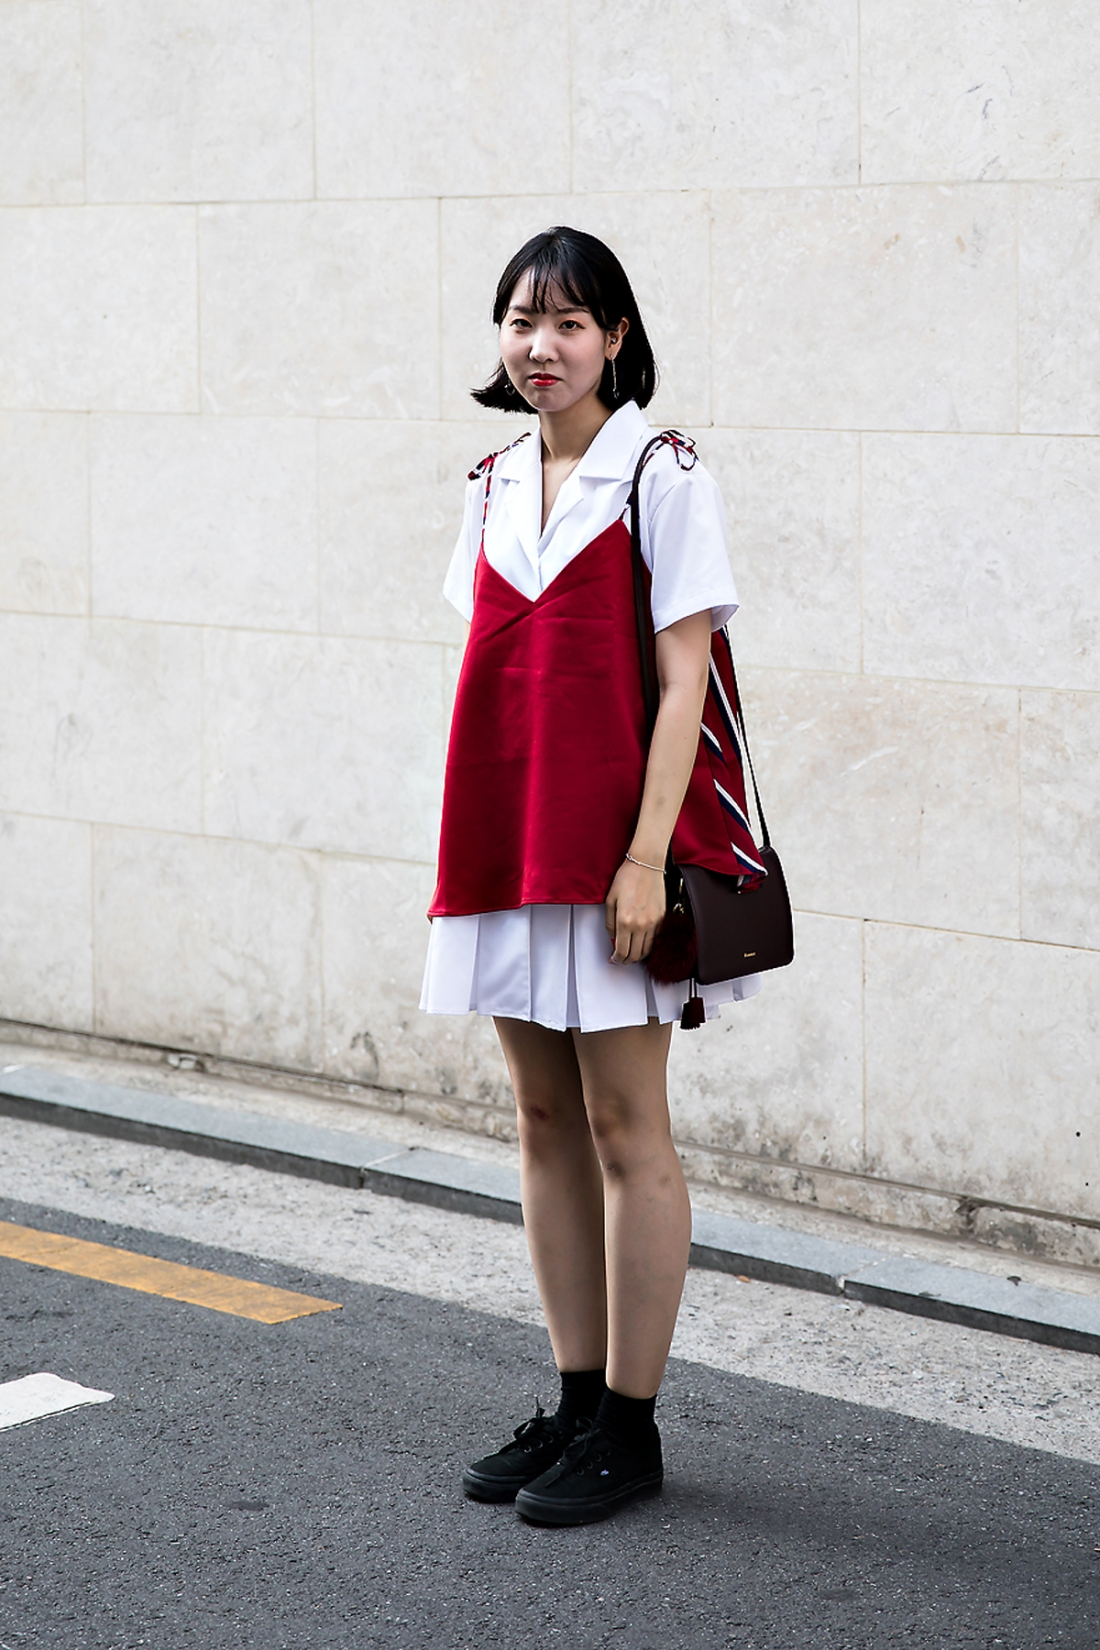 Jang Eunyoung, Street Fashion 2017 in Seoul.jpg